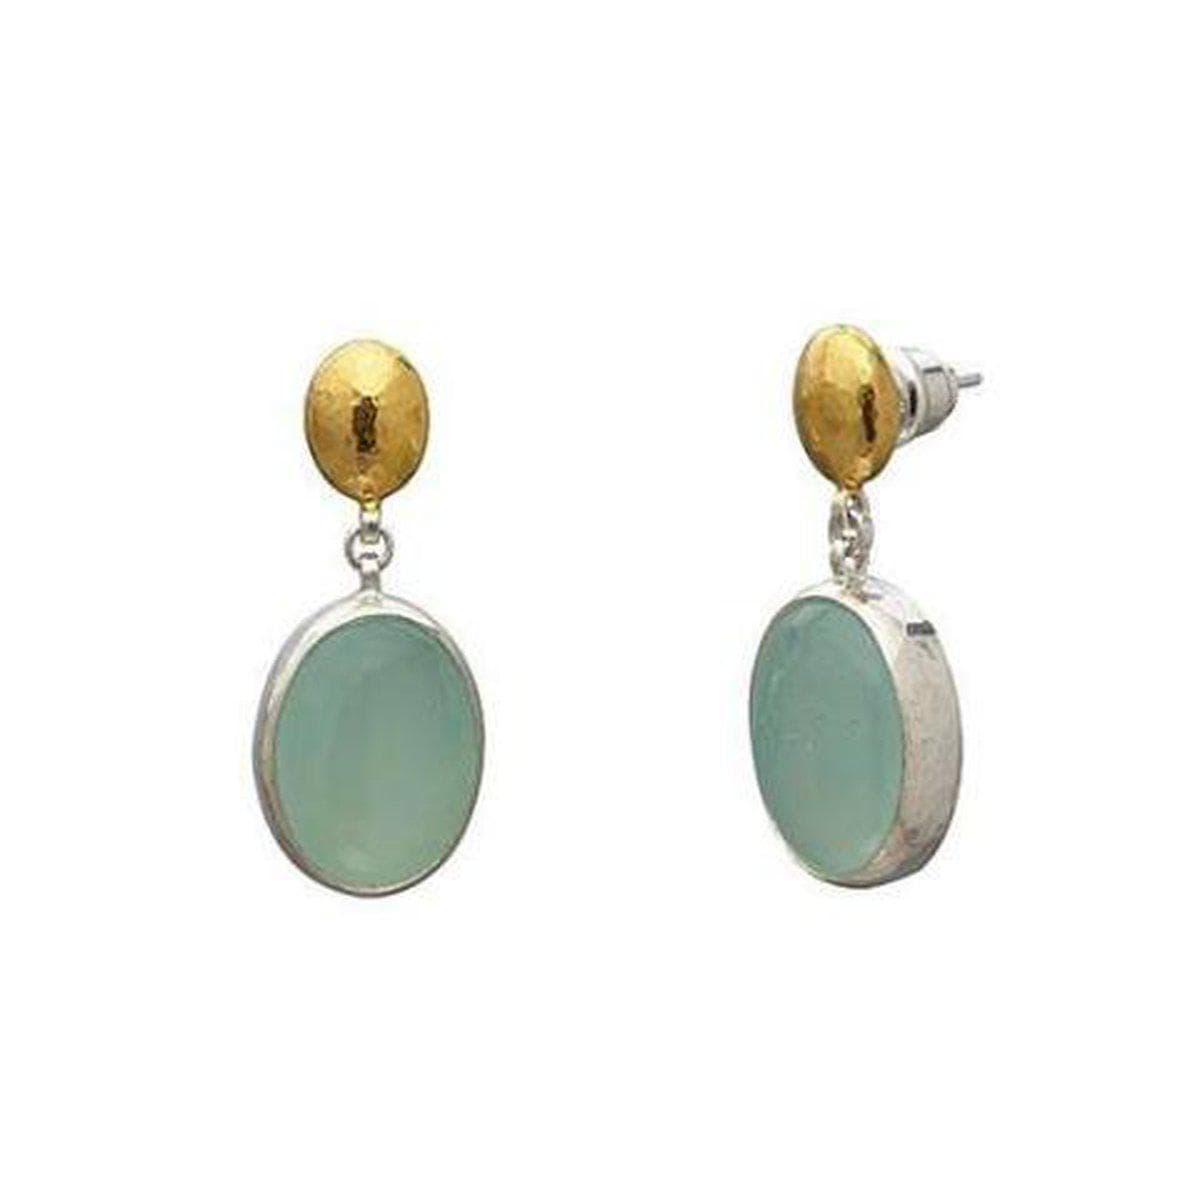 Galapagos Sterling Silver Chalcedony Earrings - SE-U26094-ACA